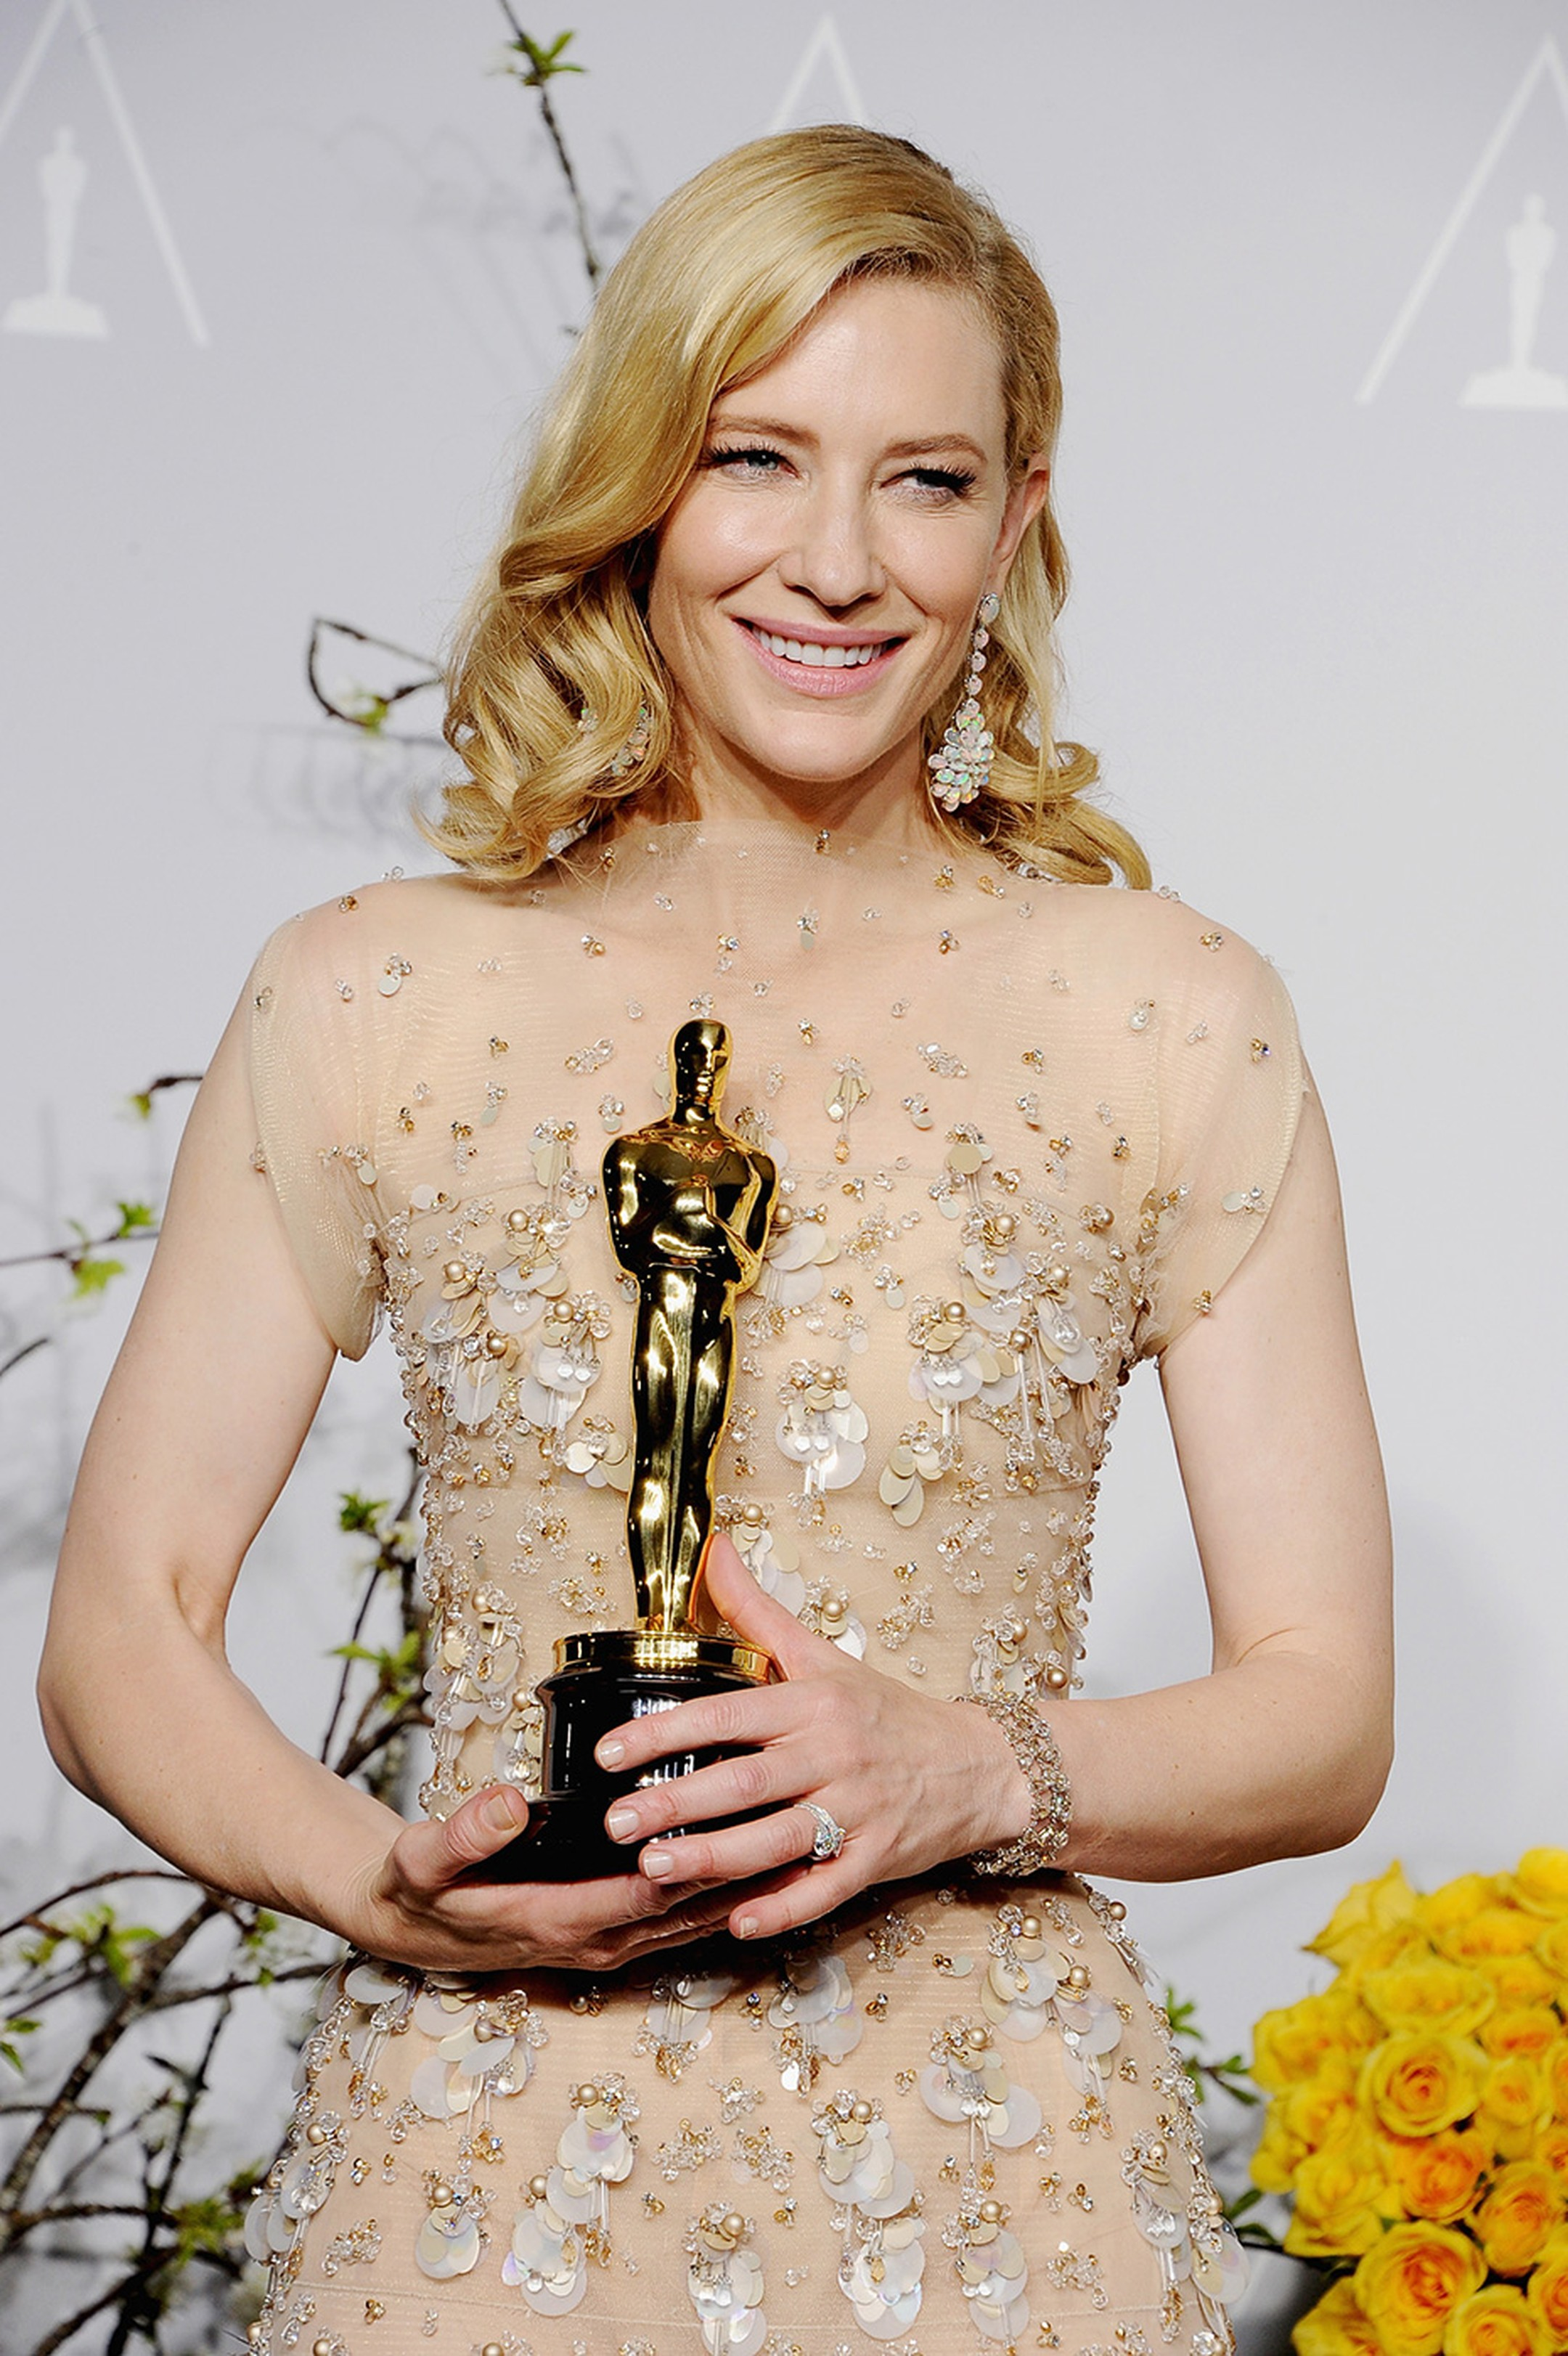 Wearing one-of-a-kind opal earrings from Chopard's 2014 Red Carpet Collection, Cate Blanchett is all smiles after receiving her Academy Award for Best Actress in a Leading Role